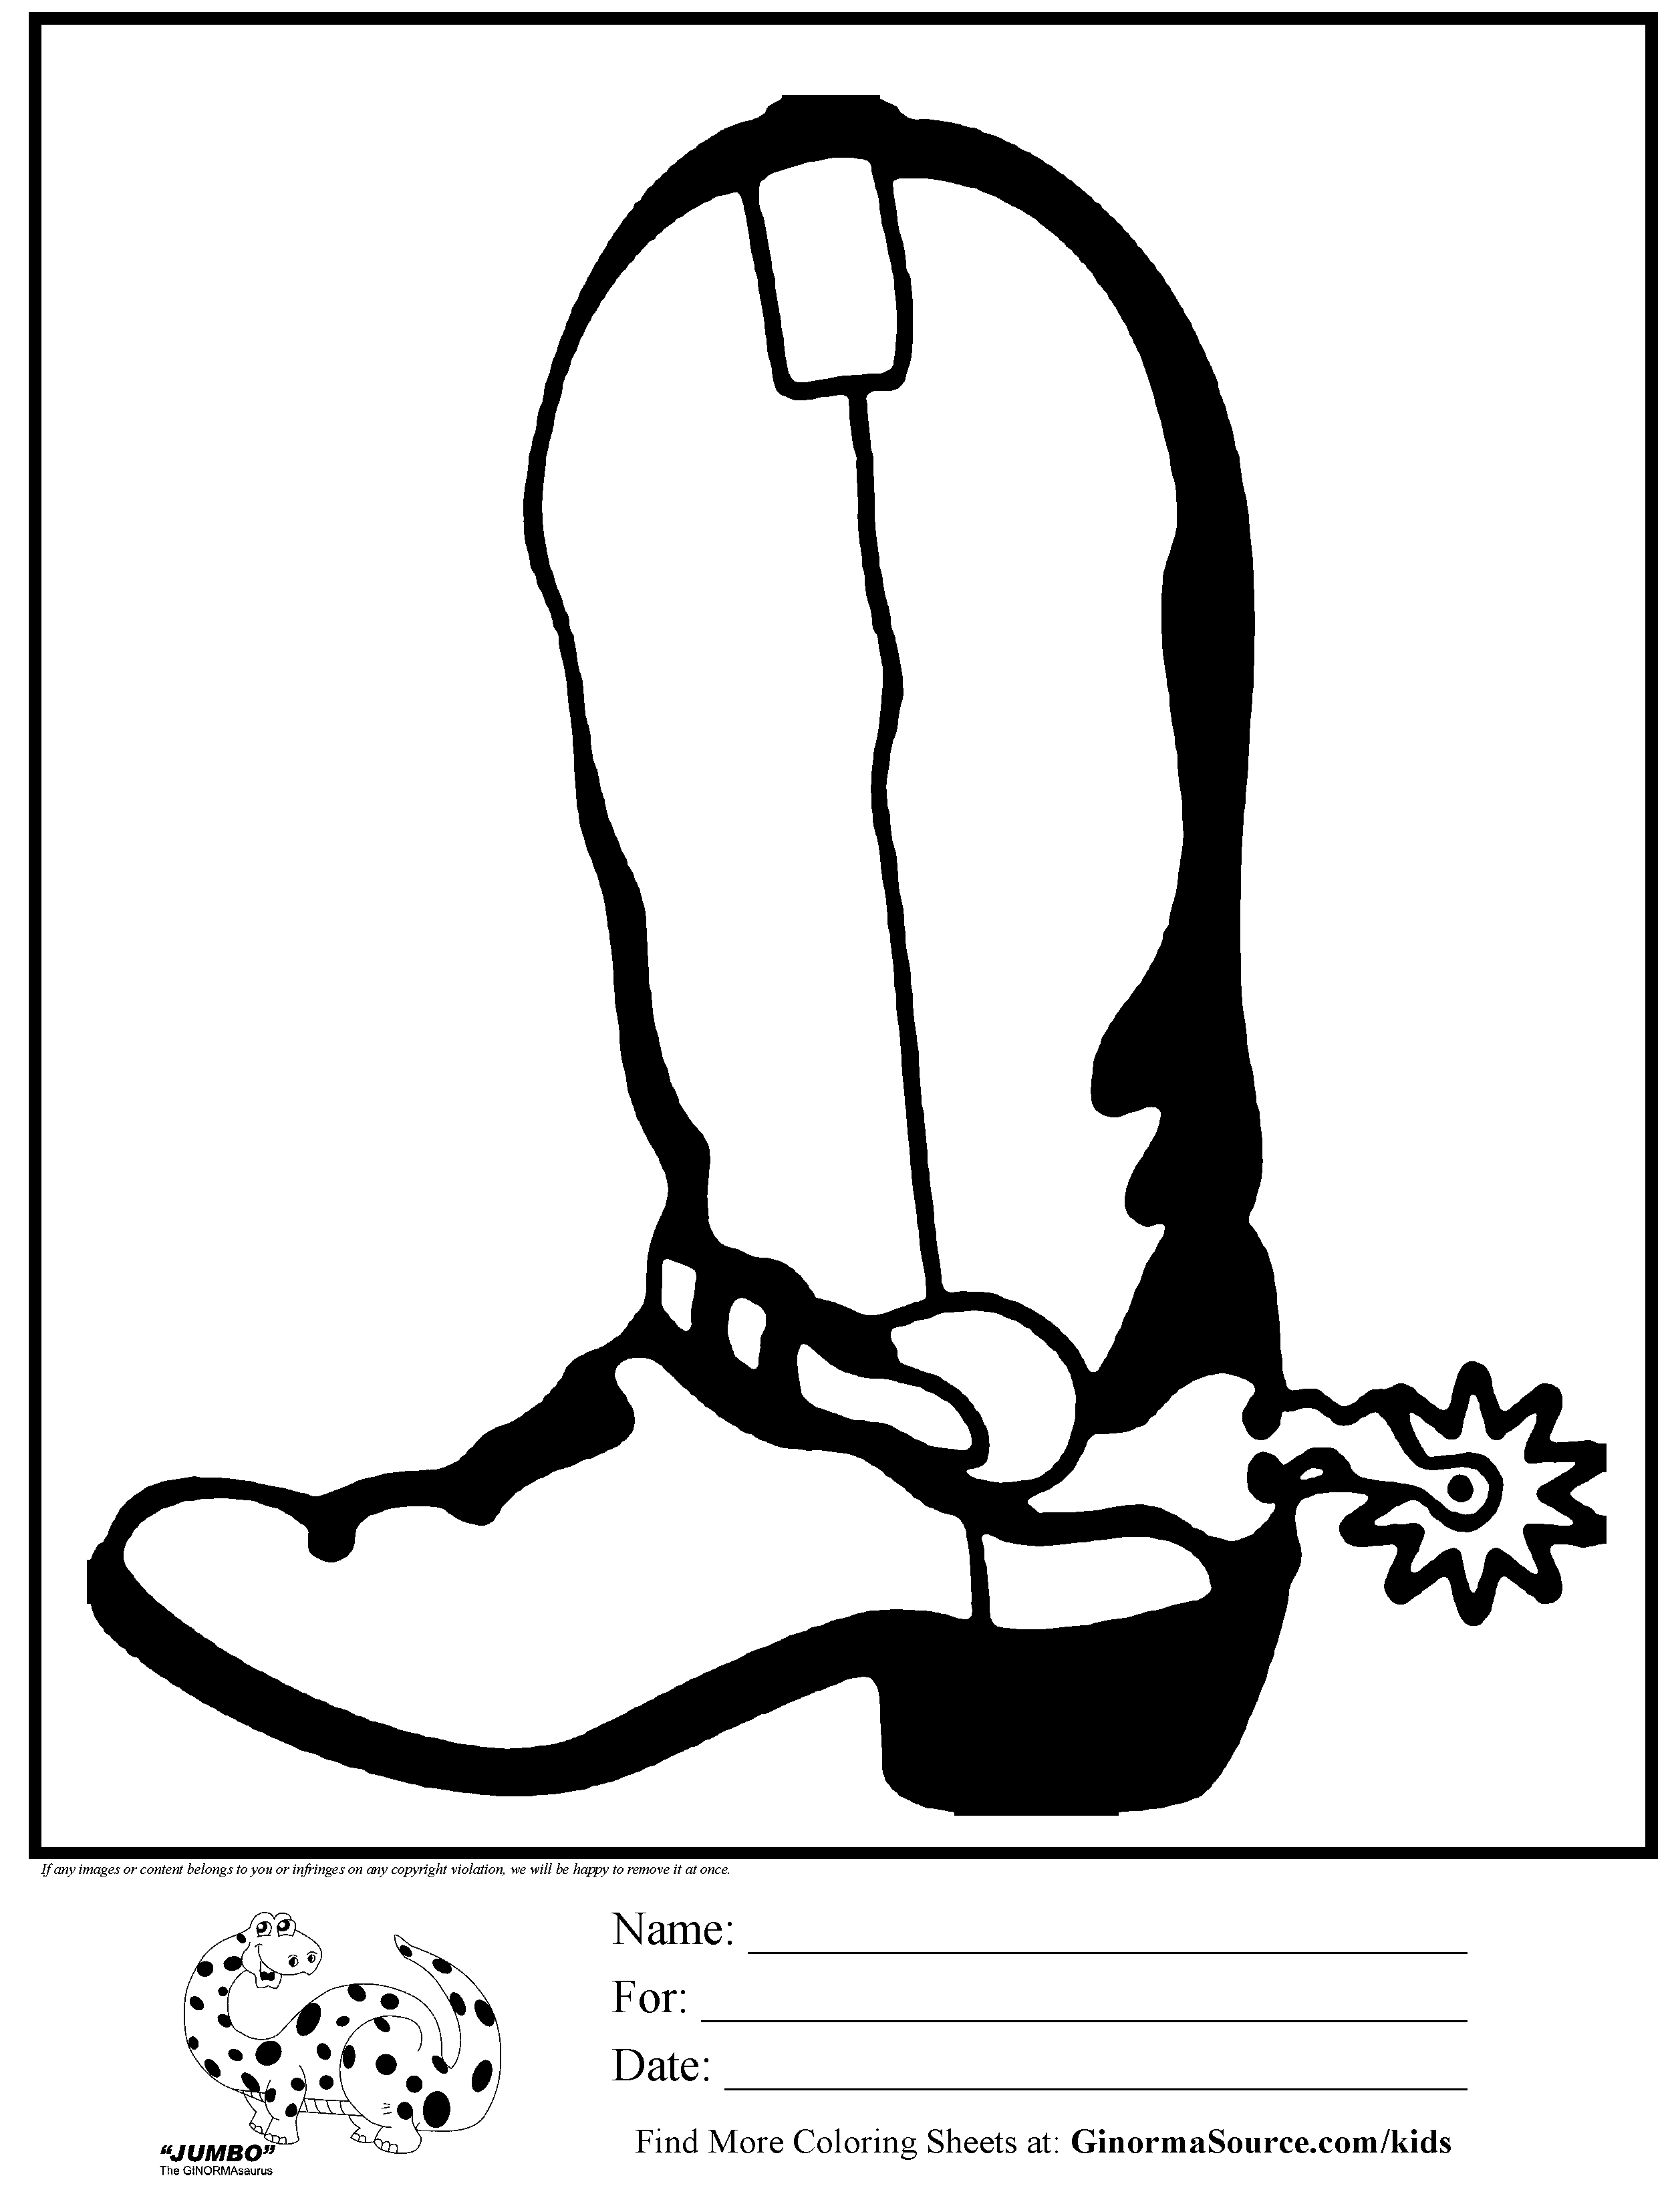 Coloring Pages For Boots Coloring Home